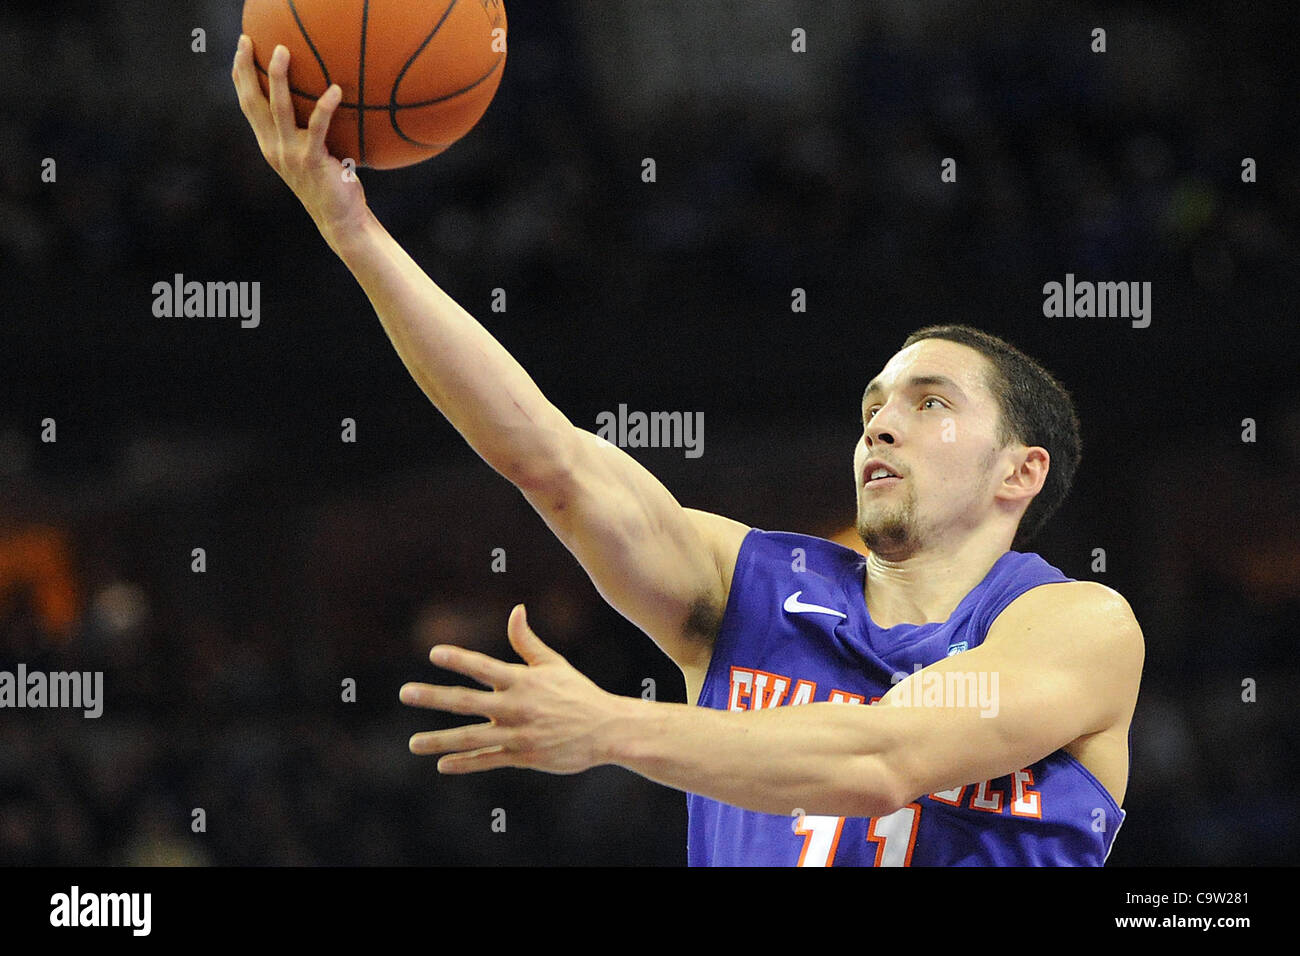 Feb. 21, 2012 - Omaha, Nebraska, U.S - Evansville guard Colt Ryan (11) scored a game high 43 points but it wasn't - Stock Image